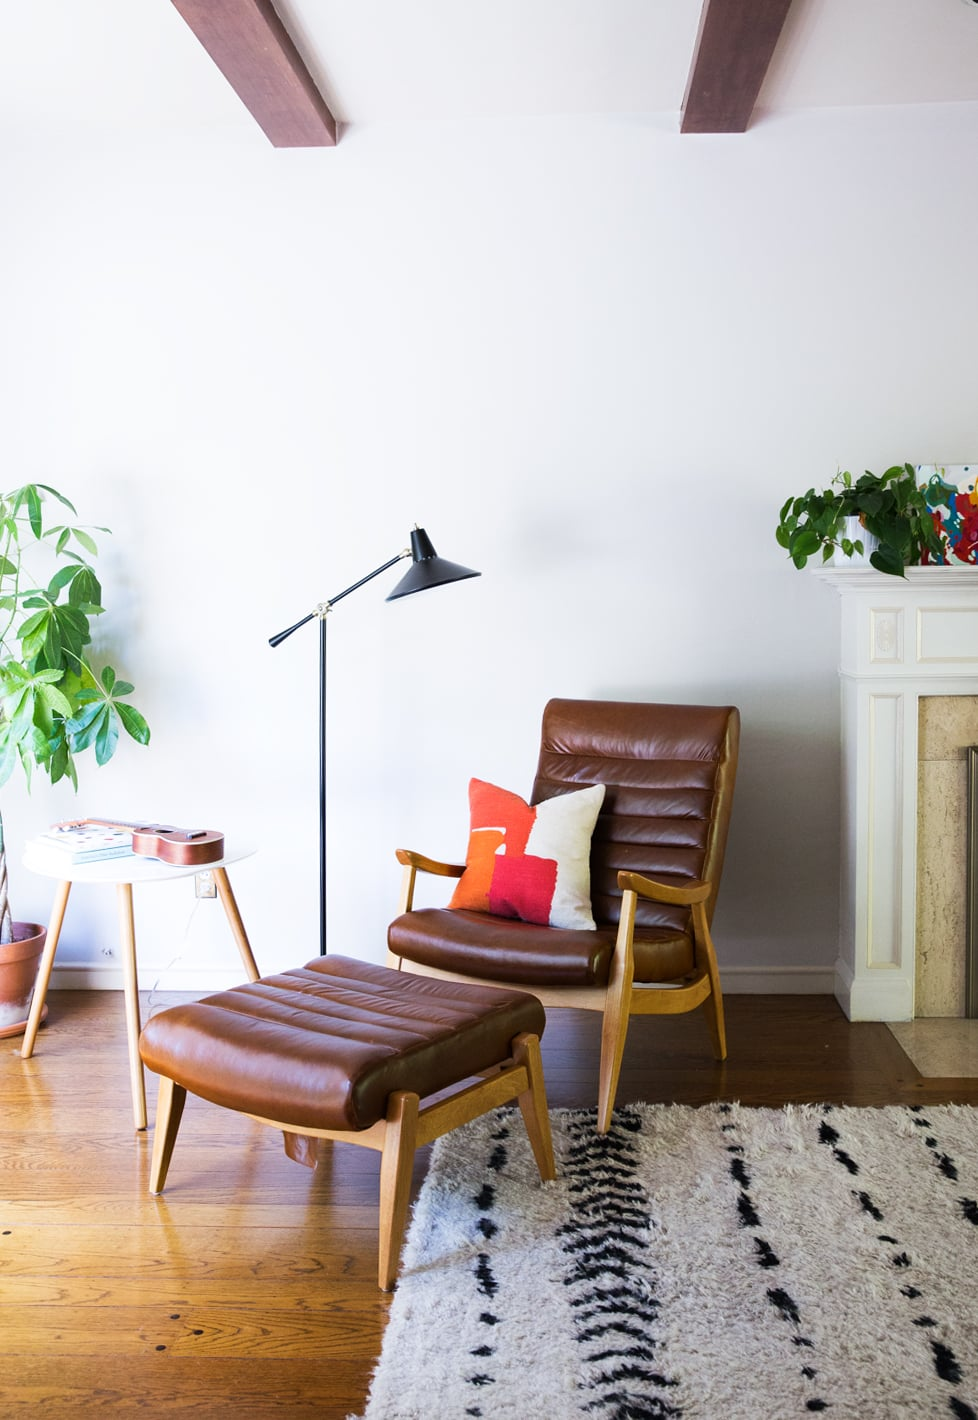 Millennials Have the Most Clutter | POPSUGAR Home